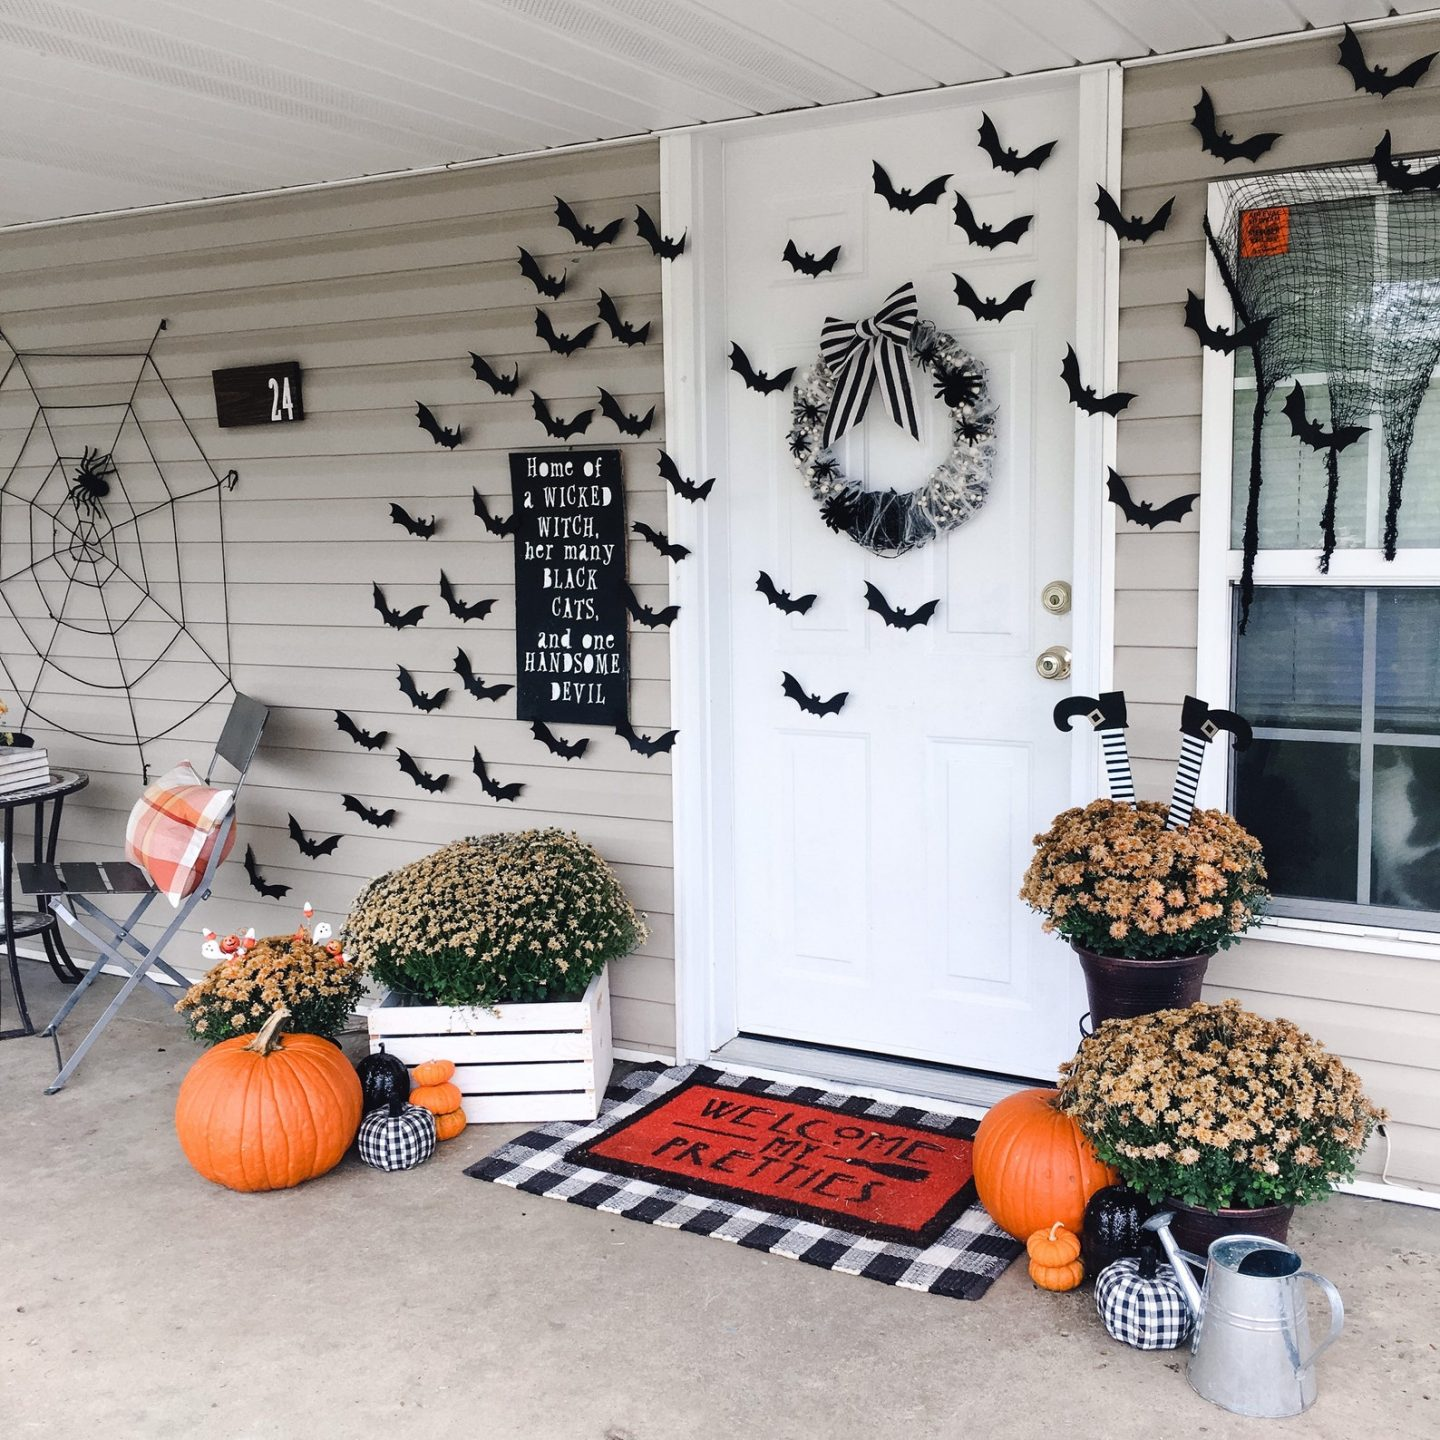 Outdoor Halloween decor for front porch with bats